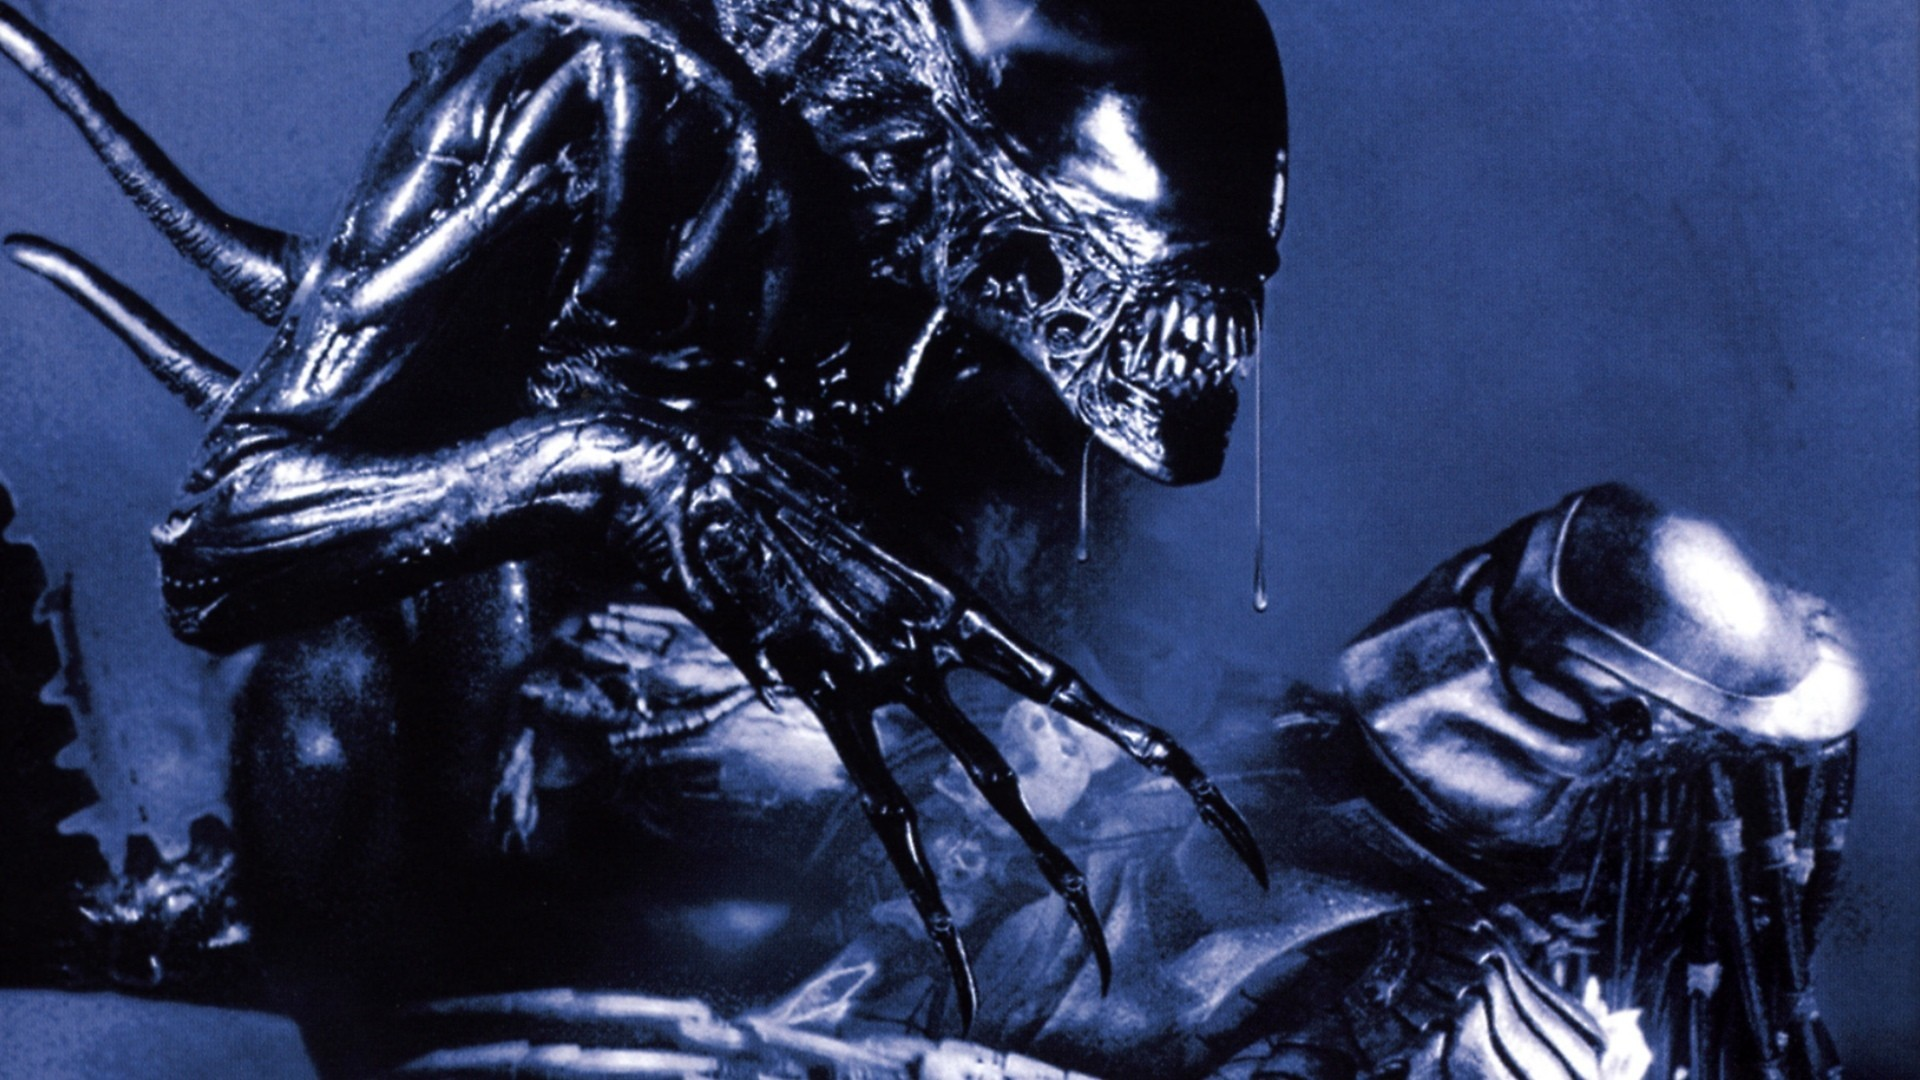 Res: 1920x1080, Alien Vs Predator Alien Wallpaper